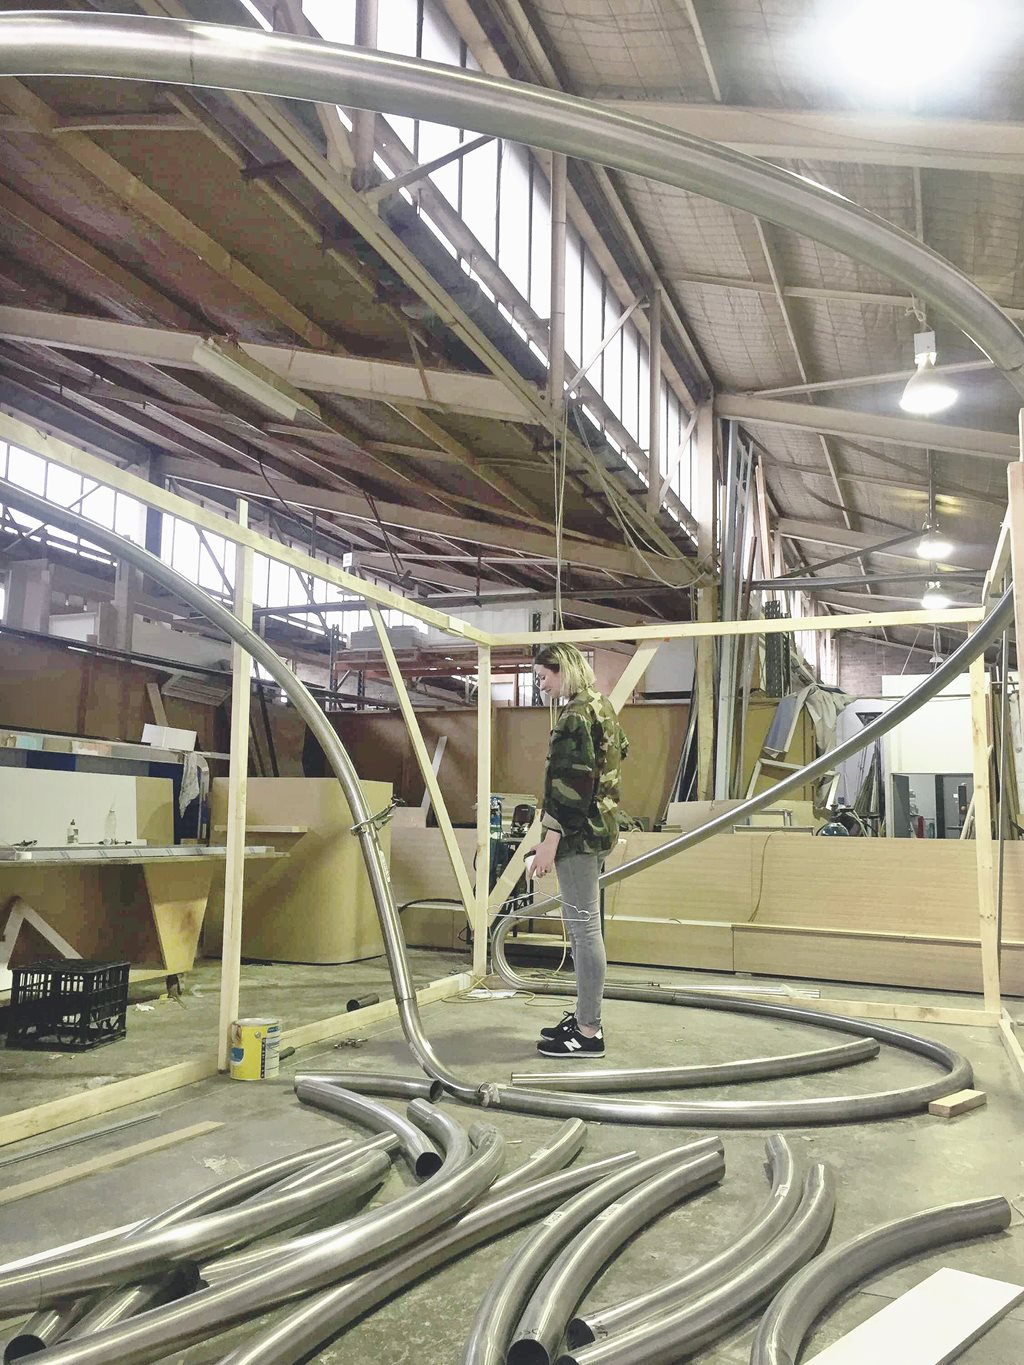 The steel frame in its parts being constructed. Image via Architecture and Design.